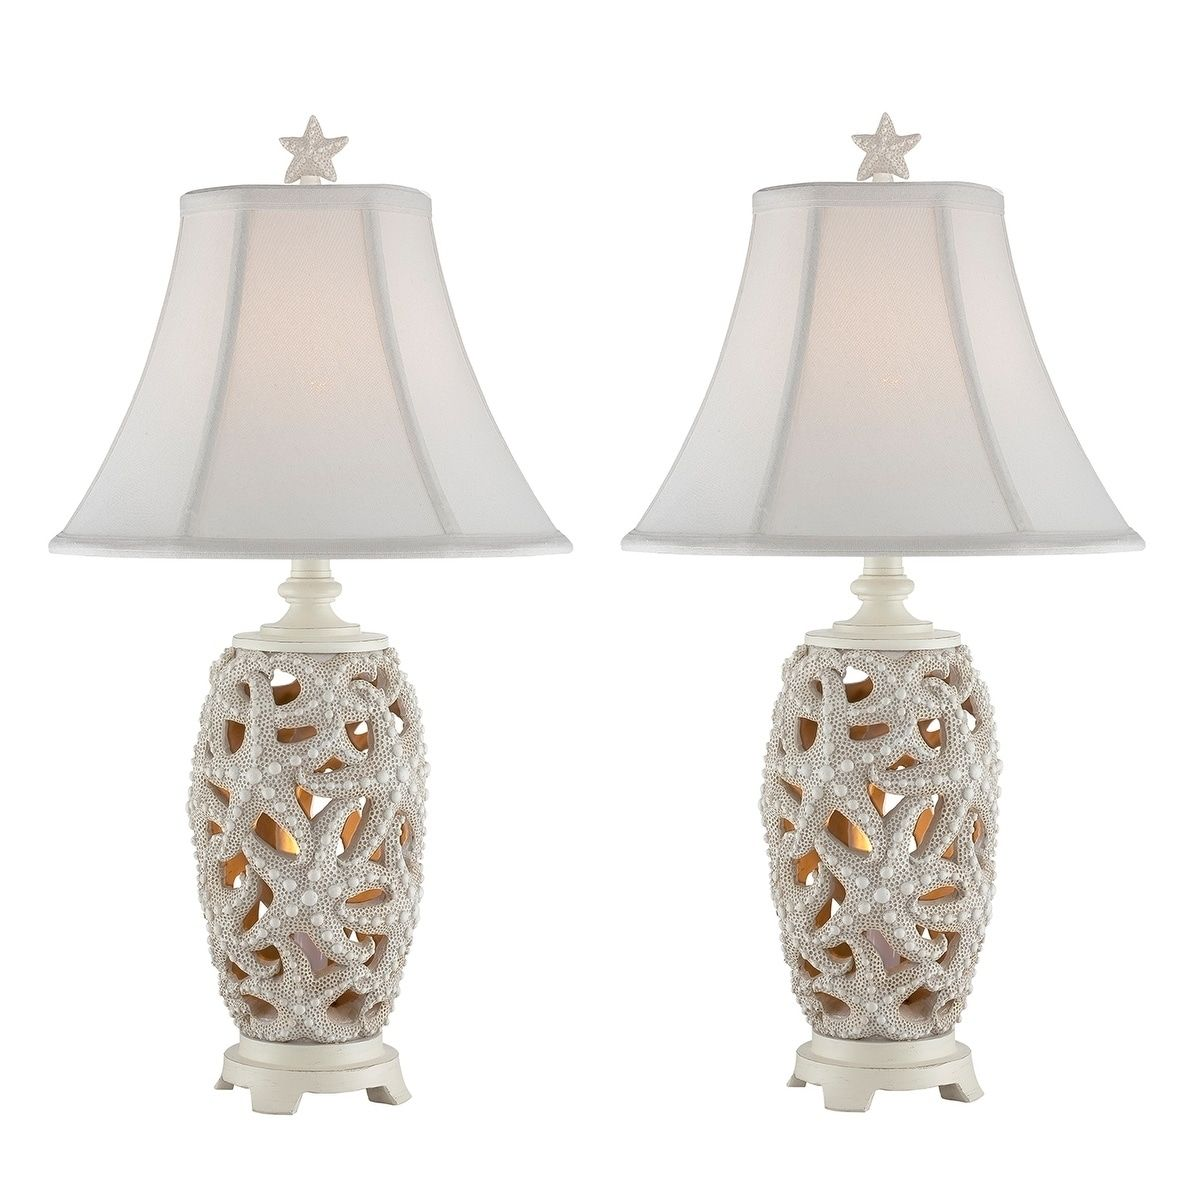 Seahaven Accent Starfish Night Light Table Lamp 24 5 High Lamp